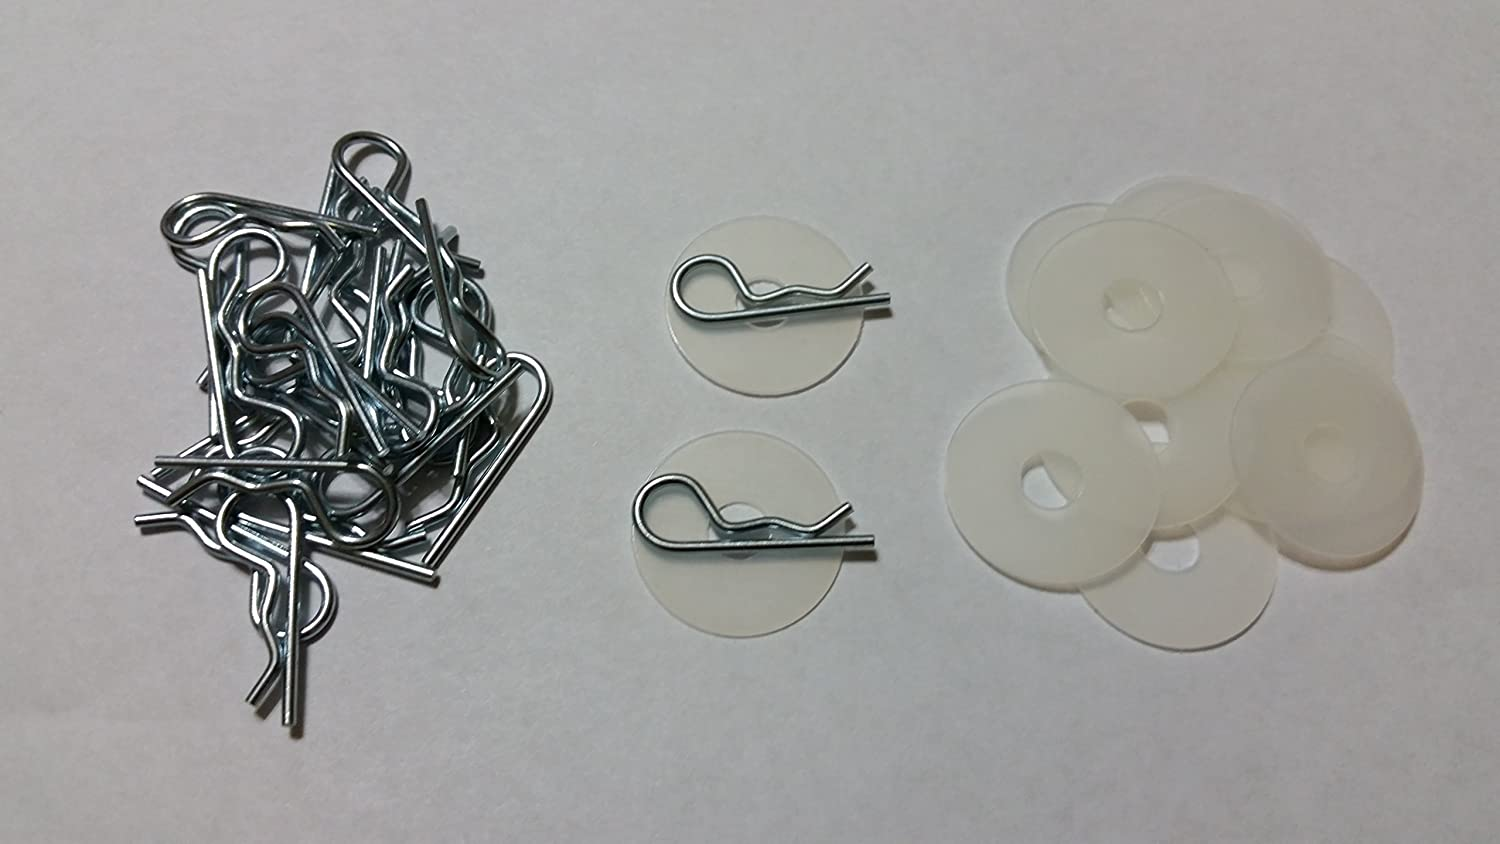 100 RC BODY CLIPS CAR TRUCK BUGGY 1//10 SCALE 12 THIN RC BODY WASHERS